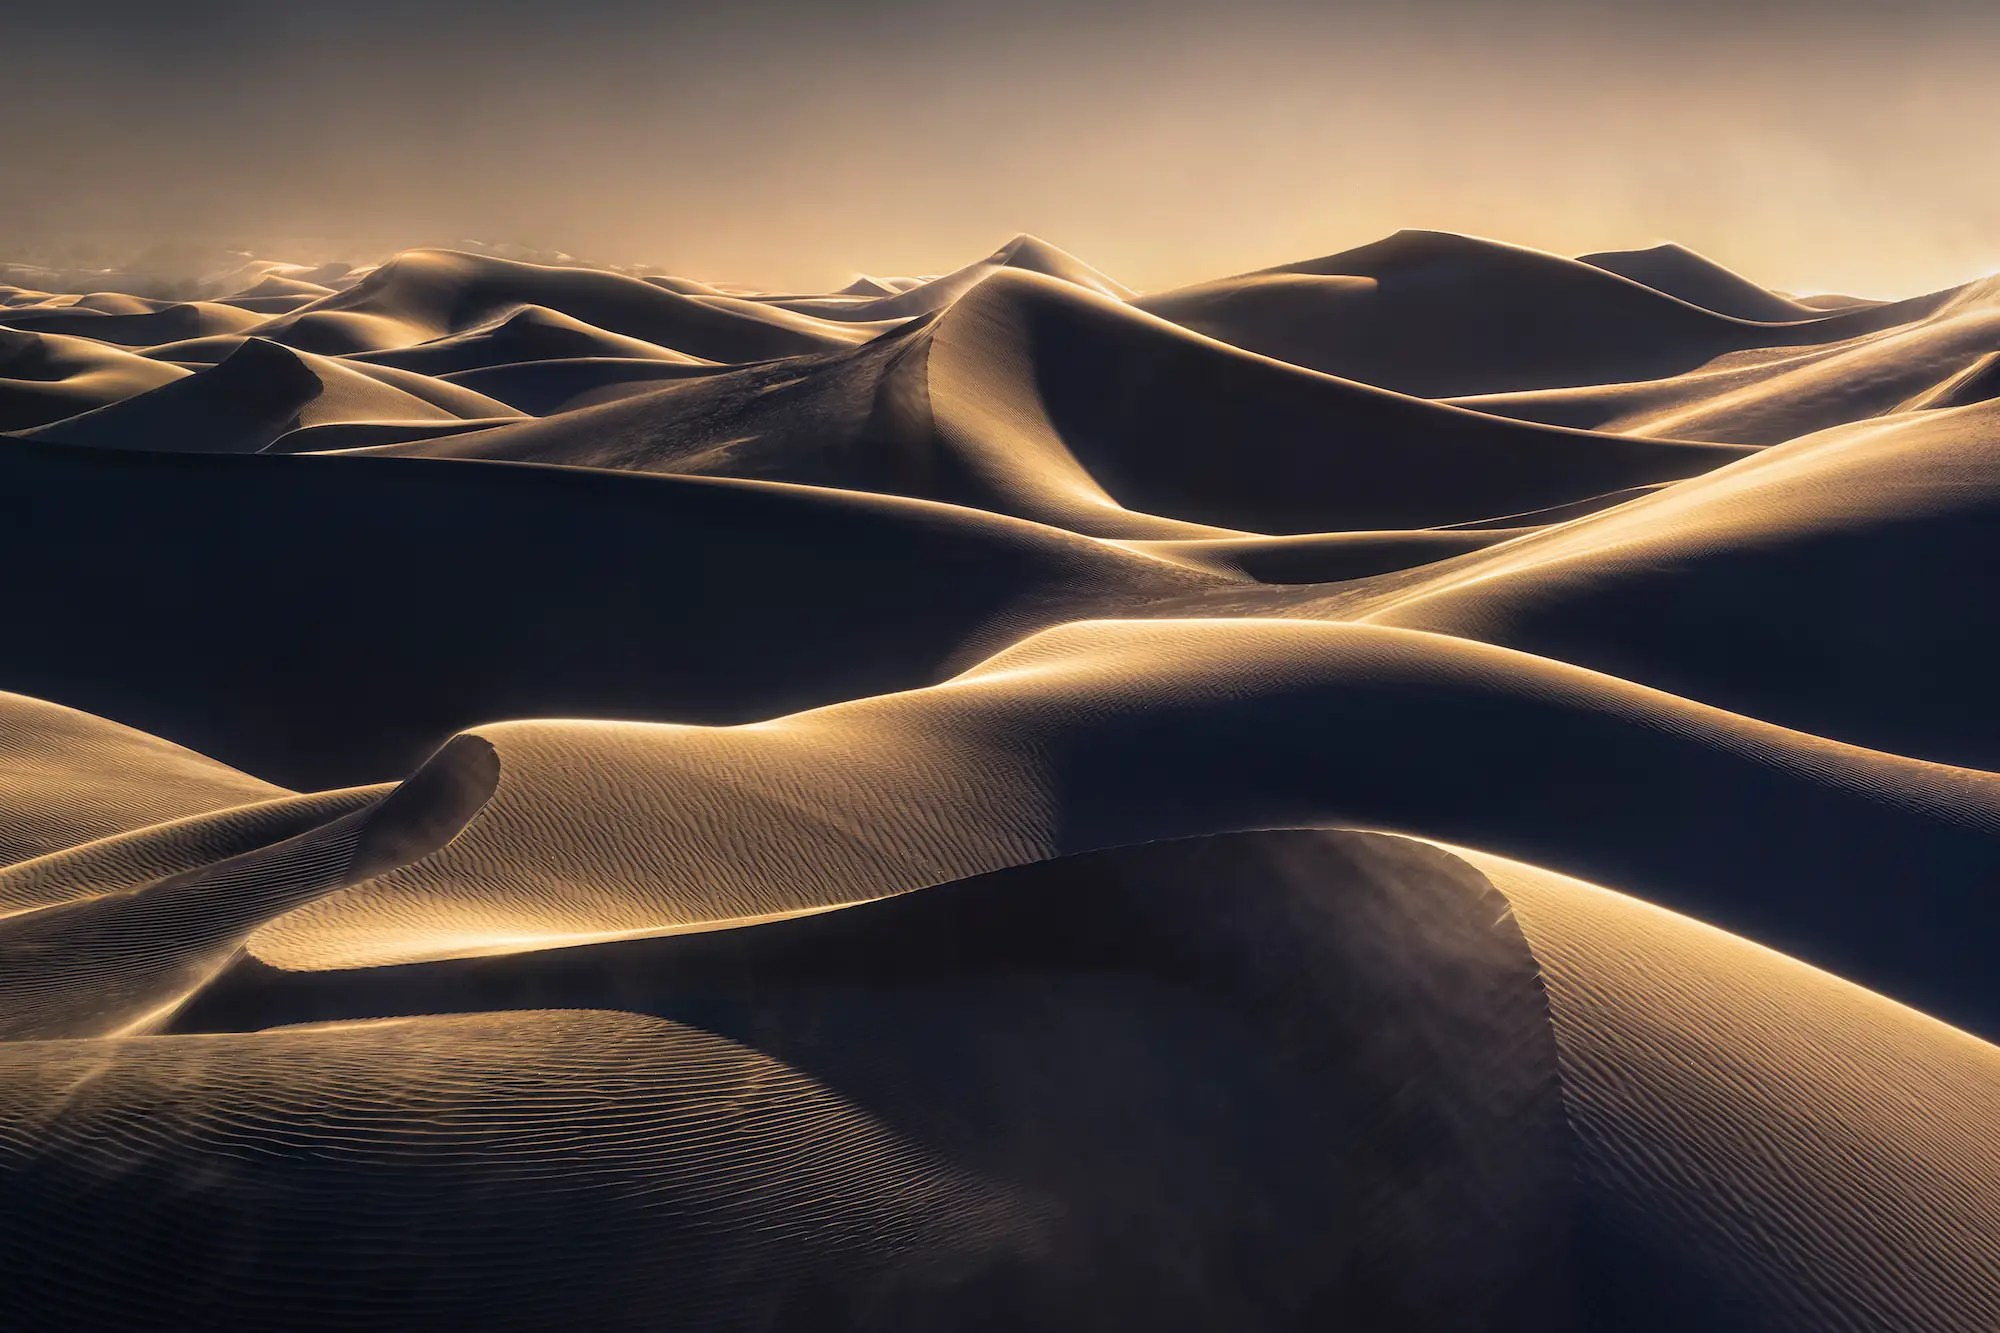 https://i1.wp.com/static2.businessinsider.com/image/5877f933f10a9a2a768b50f3-1200/alex-noriega-won-the-international-landscape-photographer-of-the-year-award-for-his-body-of-work-here-we-see-wind-and-golden-light-on-the-sand-dunes-of-death-valley-california.jpg